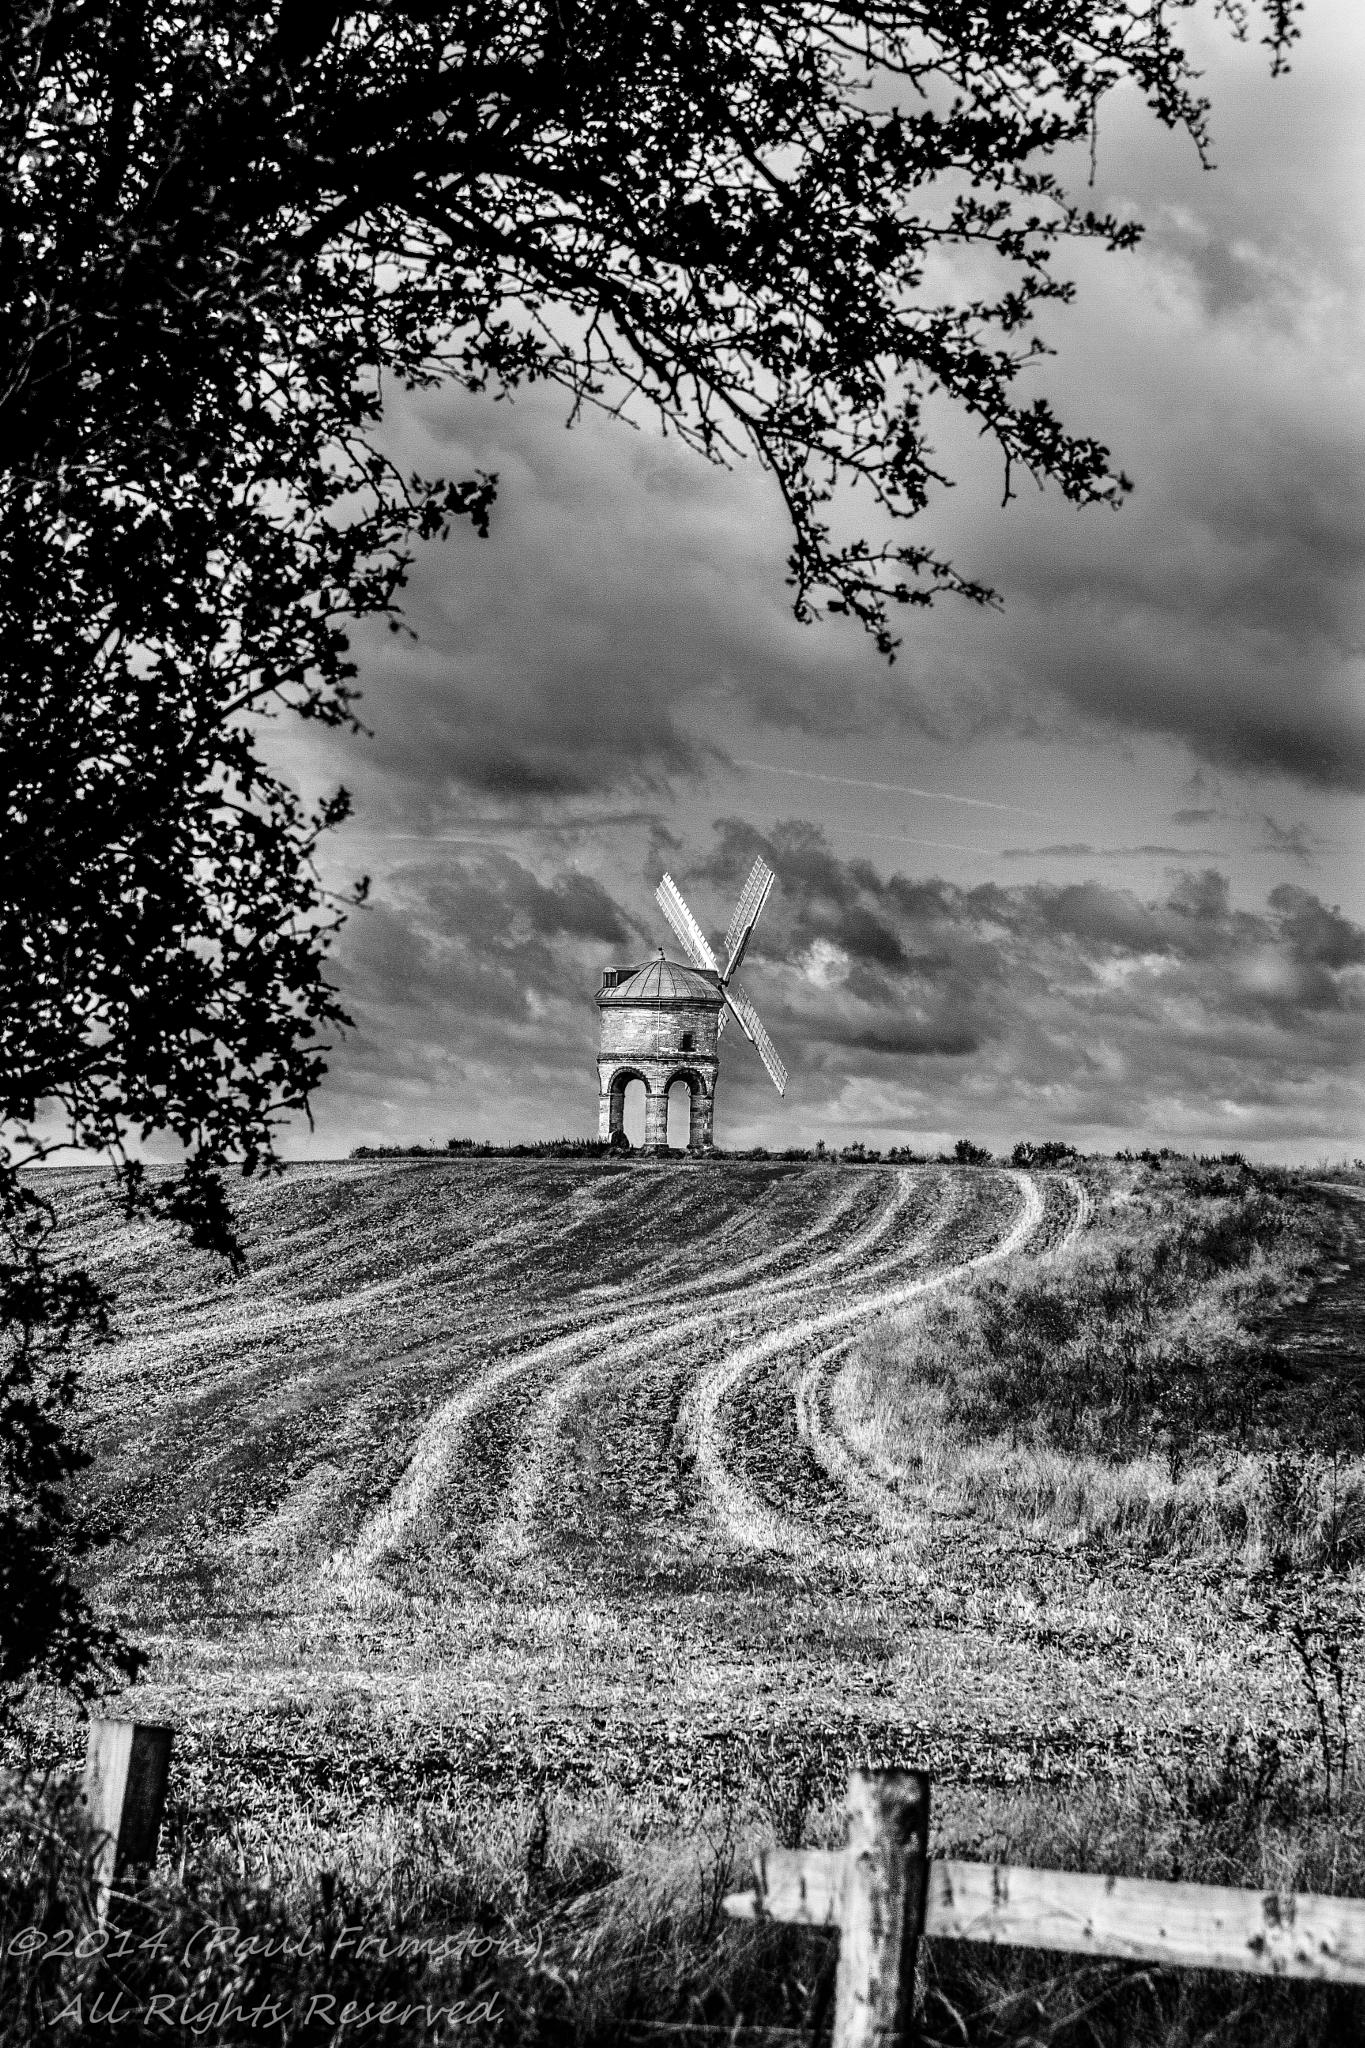 Chesterton Windmill by Paul Frimston